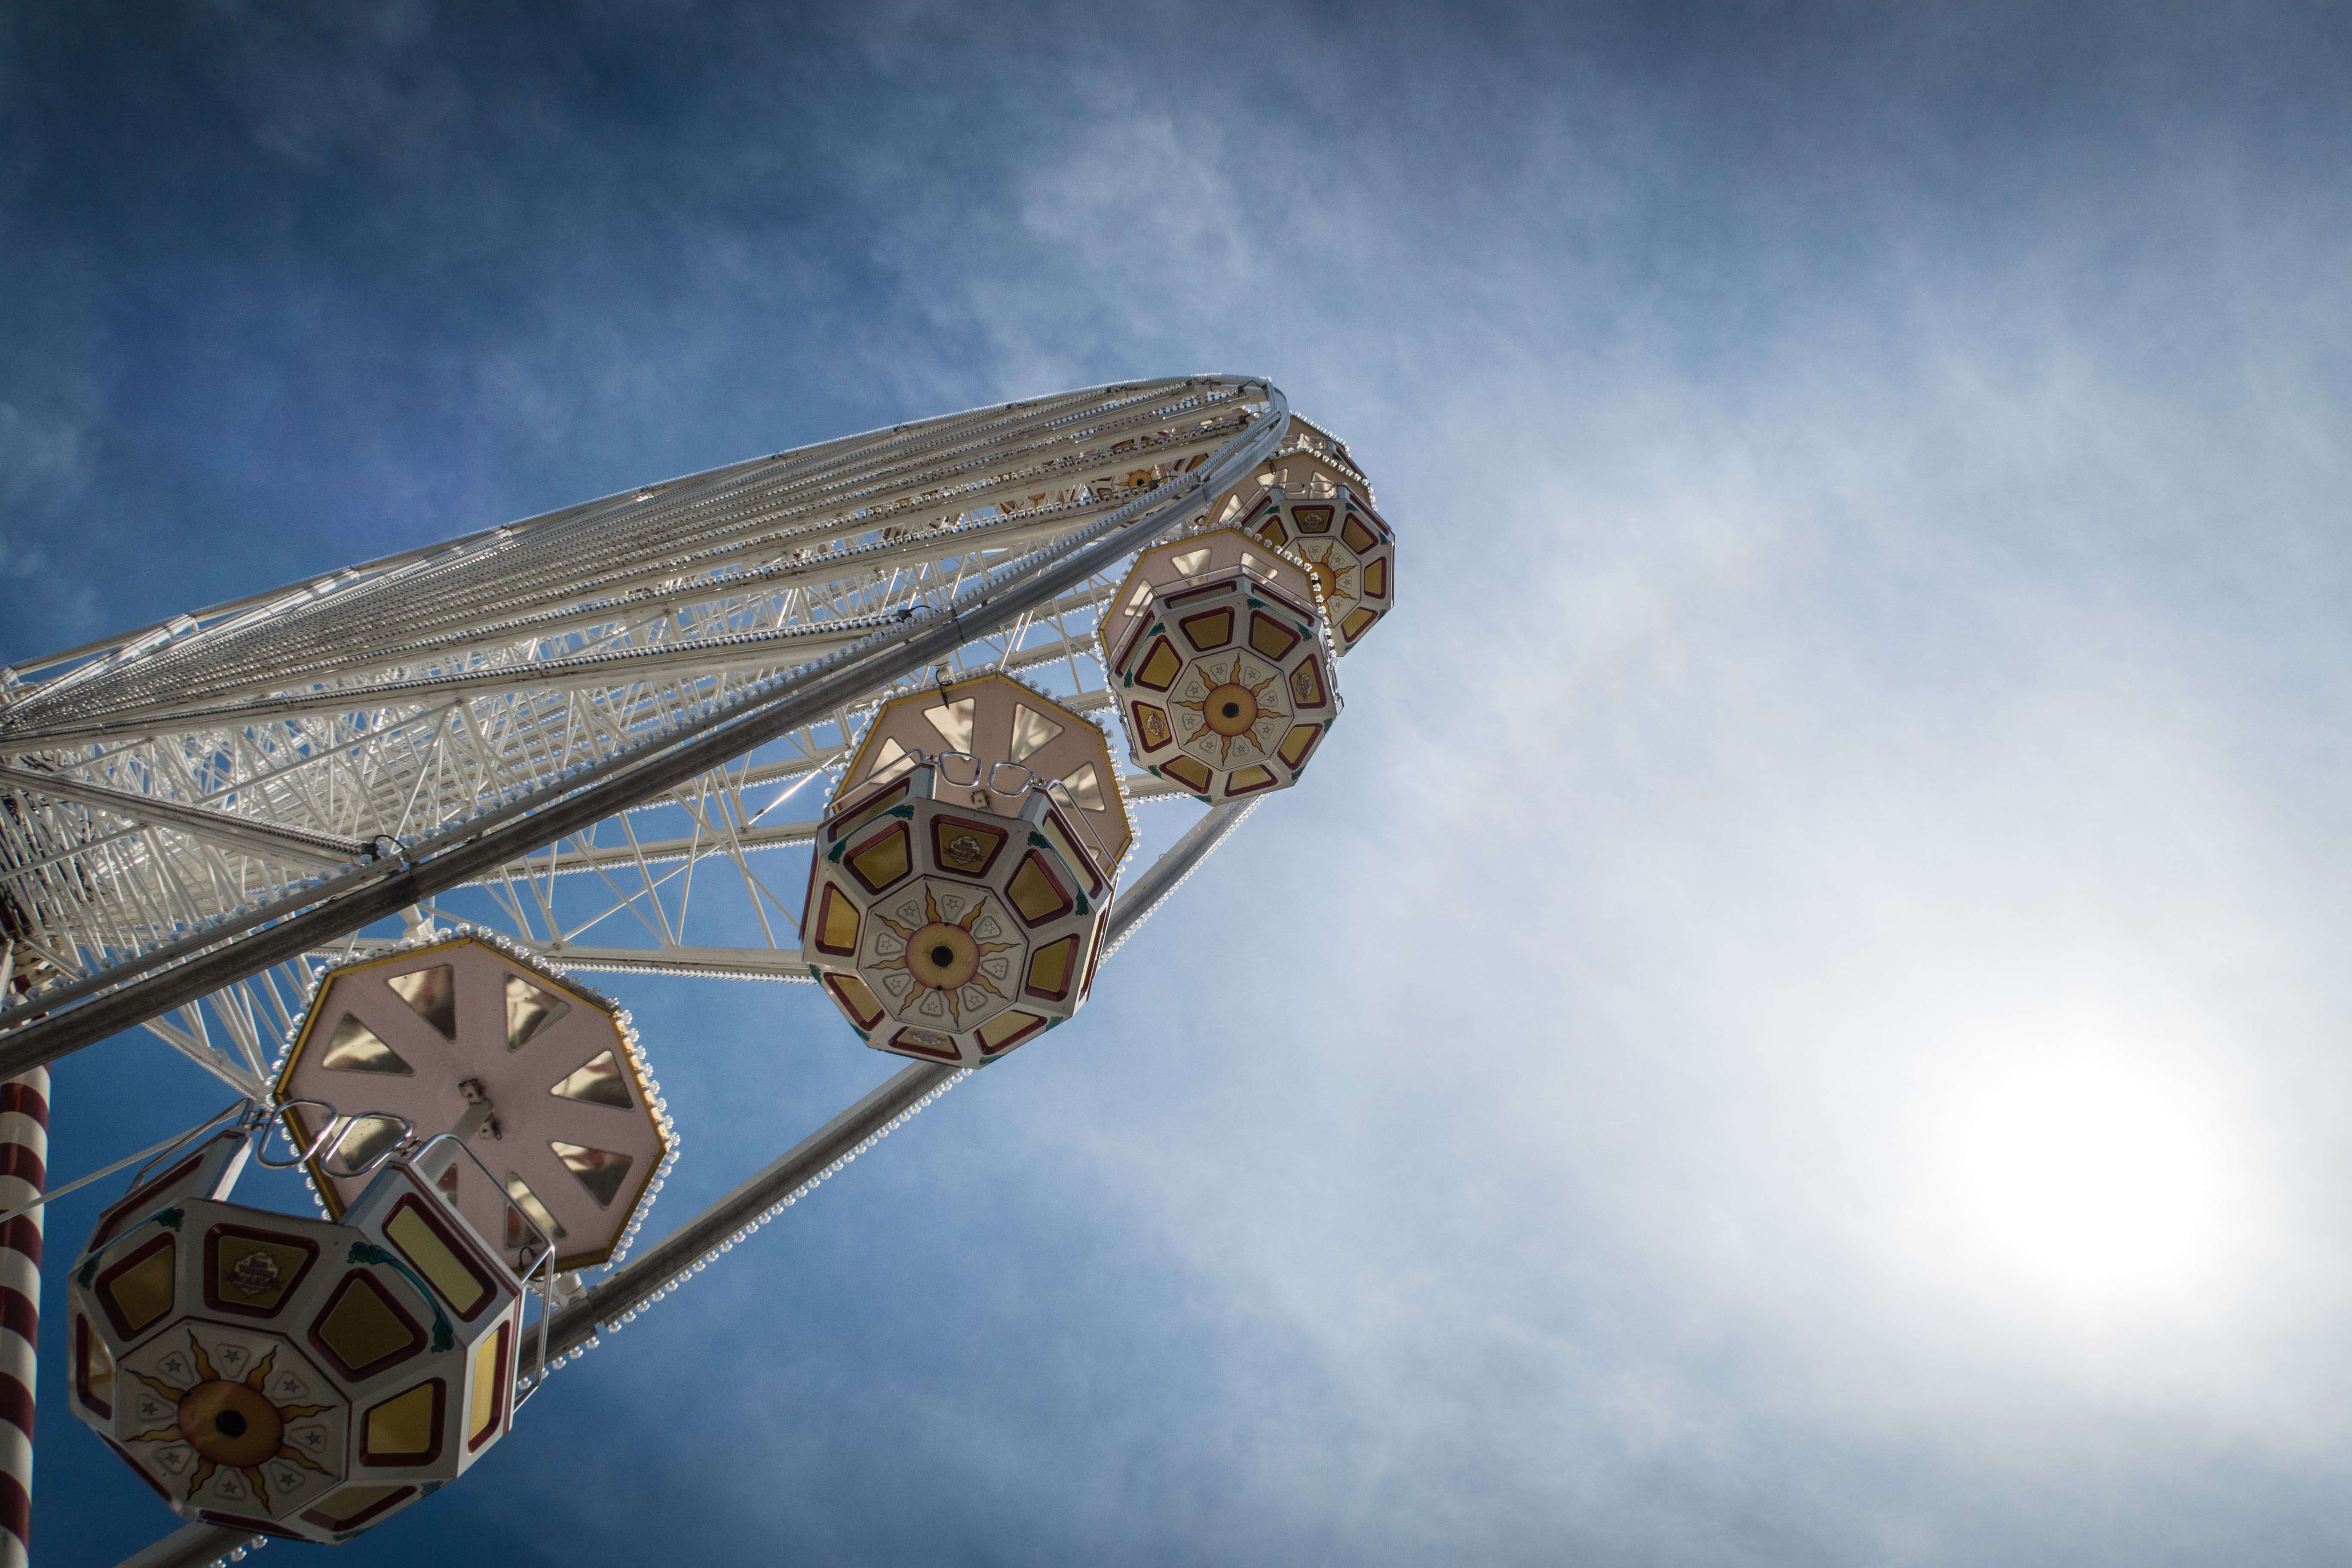 low angle photography of ferris wheel during daytime